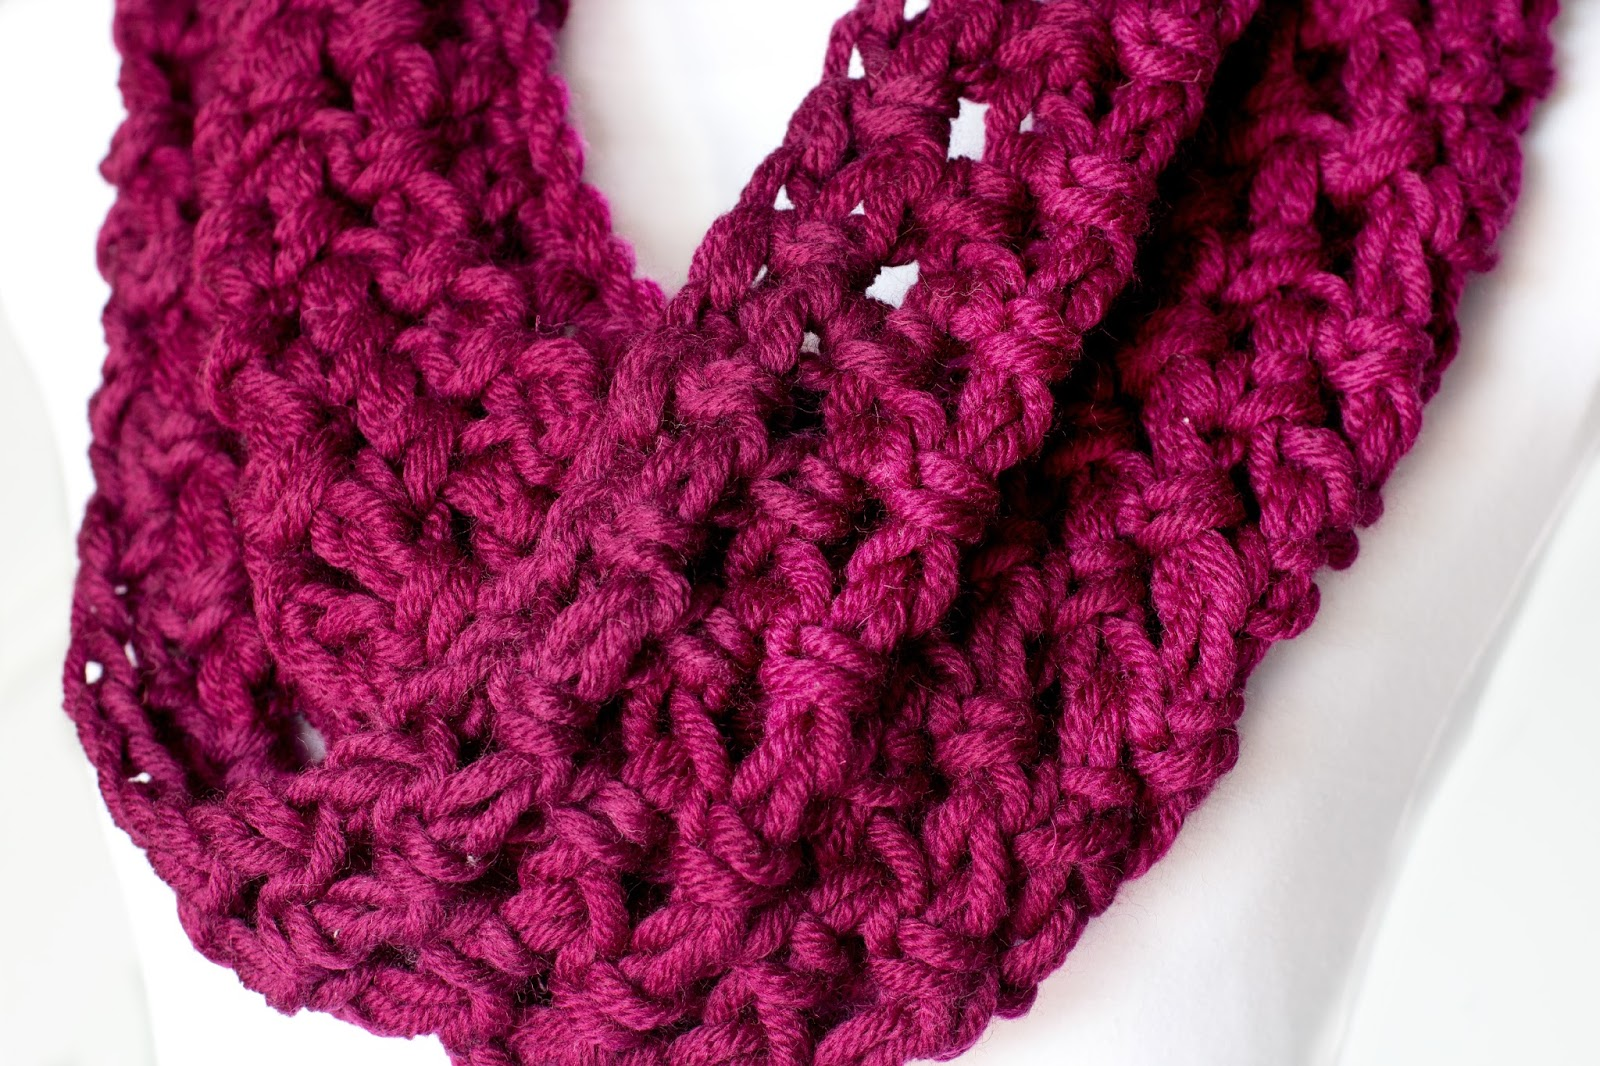 Free Crochet Patterns With Super Bulky Yarn : Crafts on Pinterest Cowls, Free Crochet and Afghans